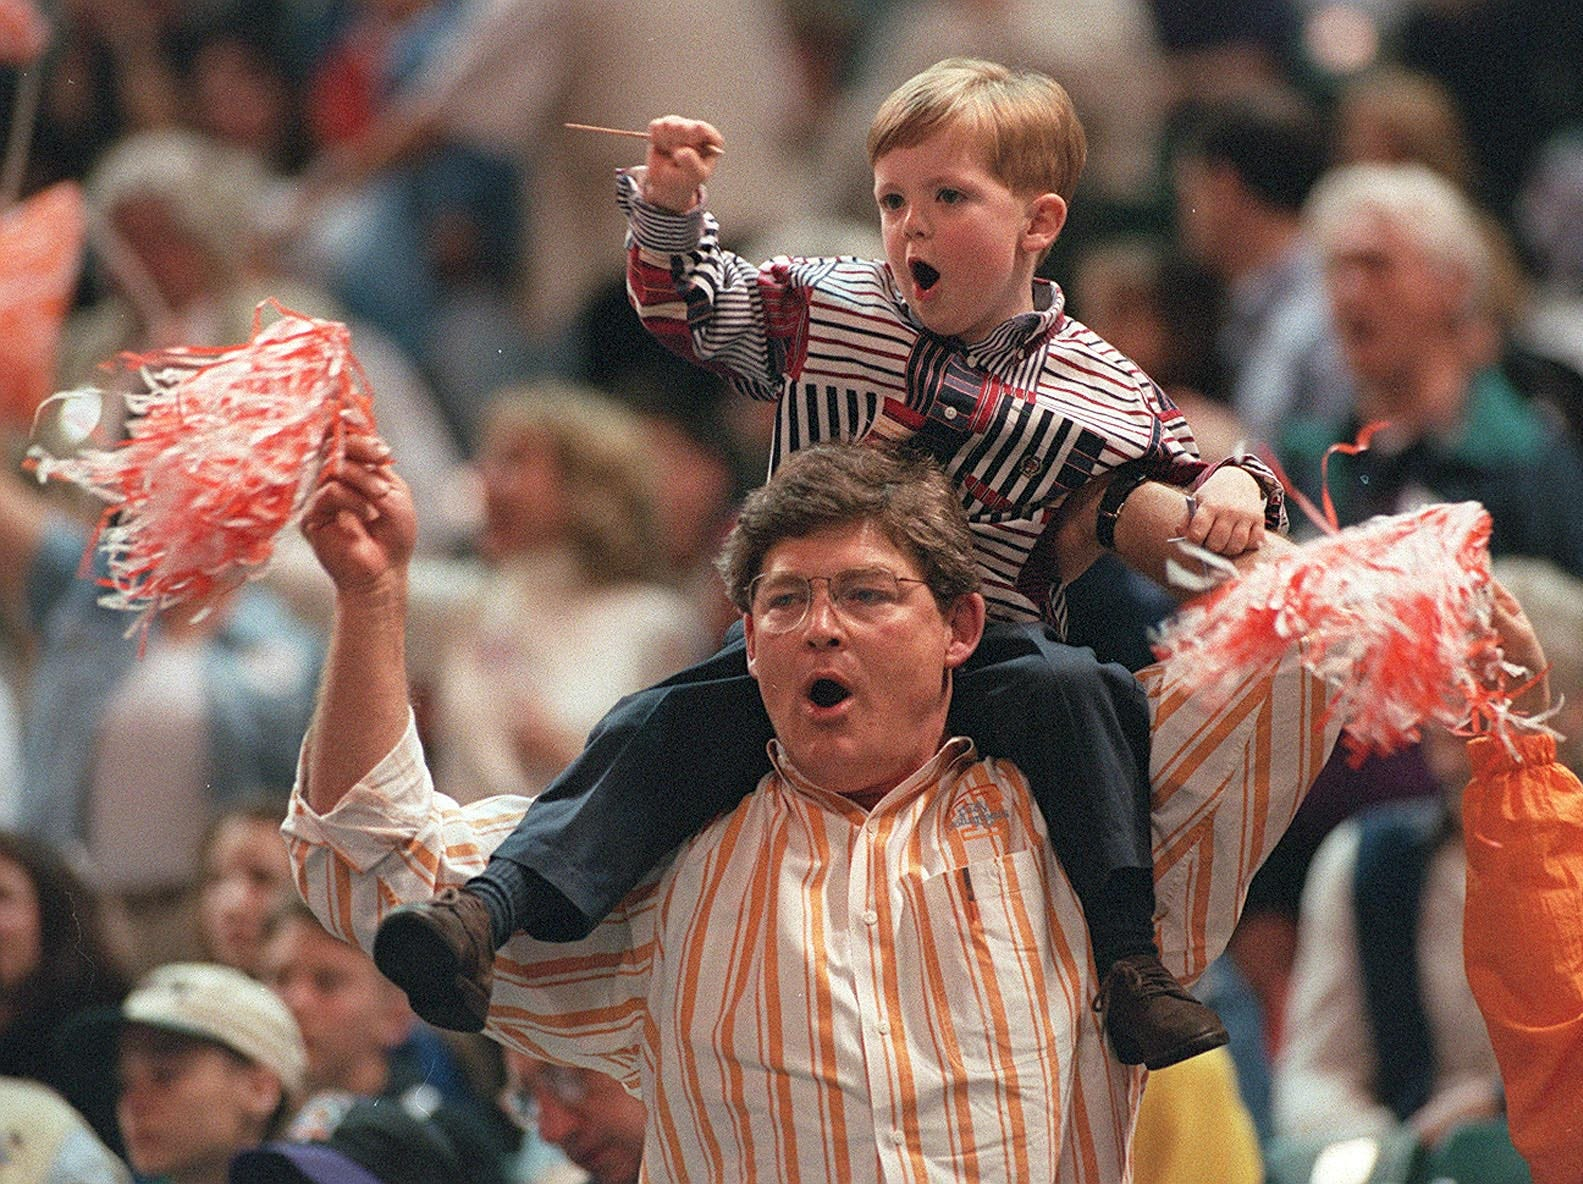 R.B. and Tyler Summitt cheer for the Lady Vols during the Final Four in Charlotte, NC. 1996.